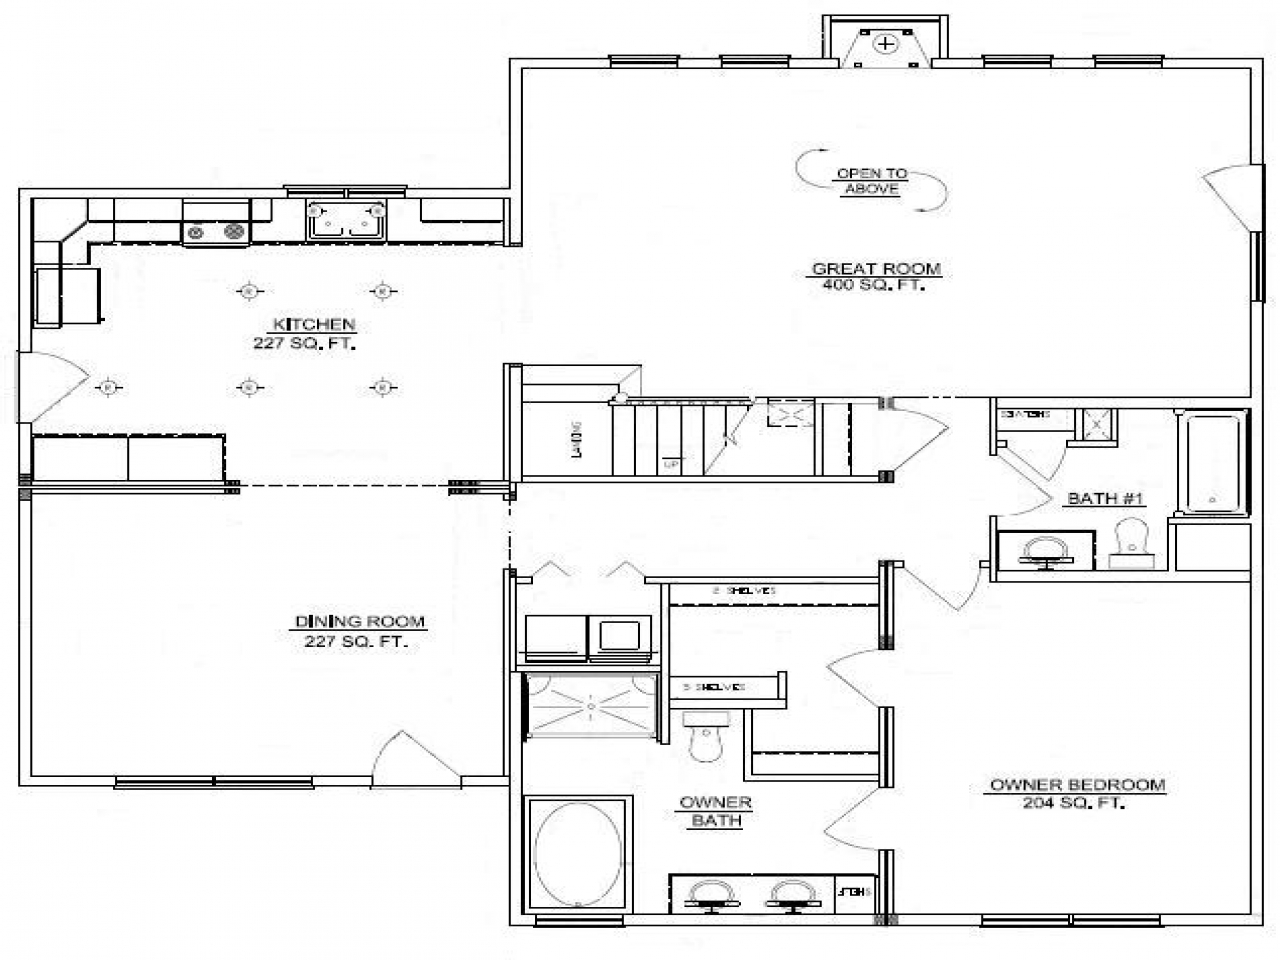 3 bedroom log cabin floor plans 3 bedroom double wide for Log cabin layout plans